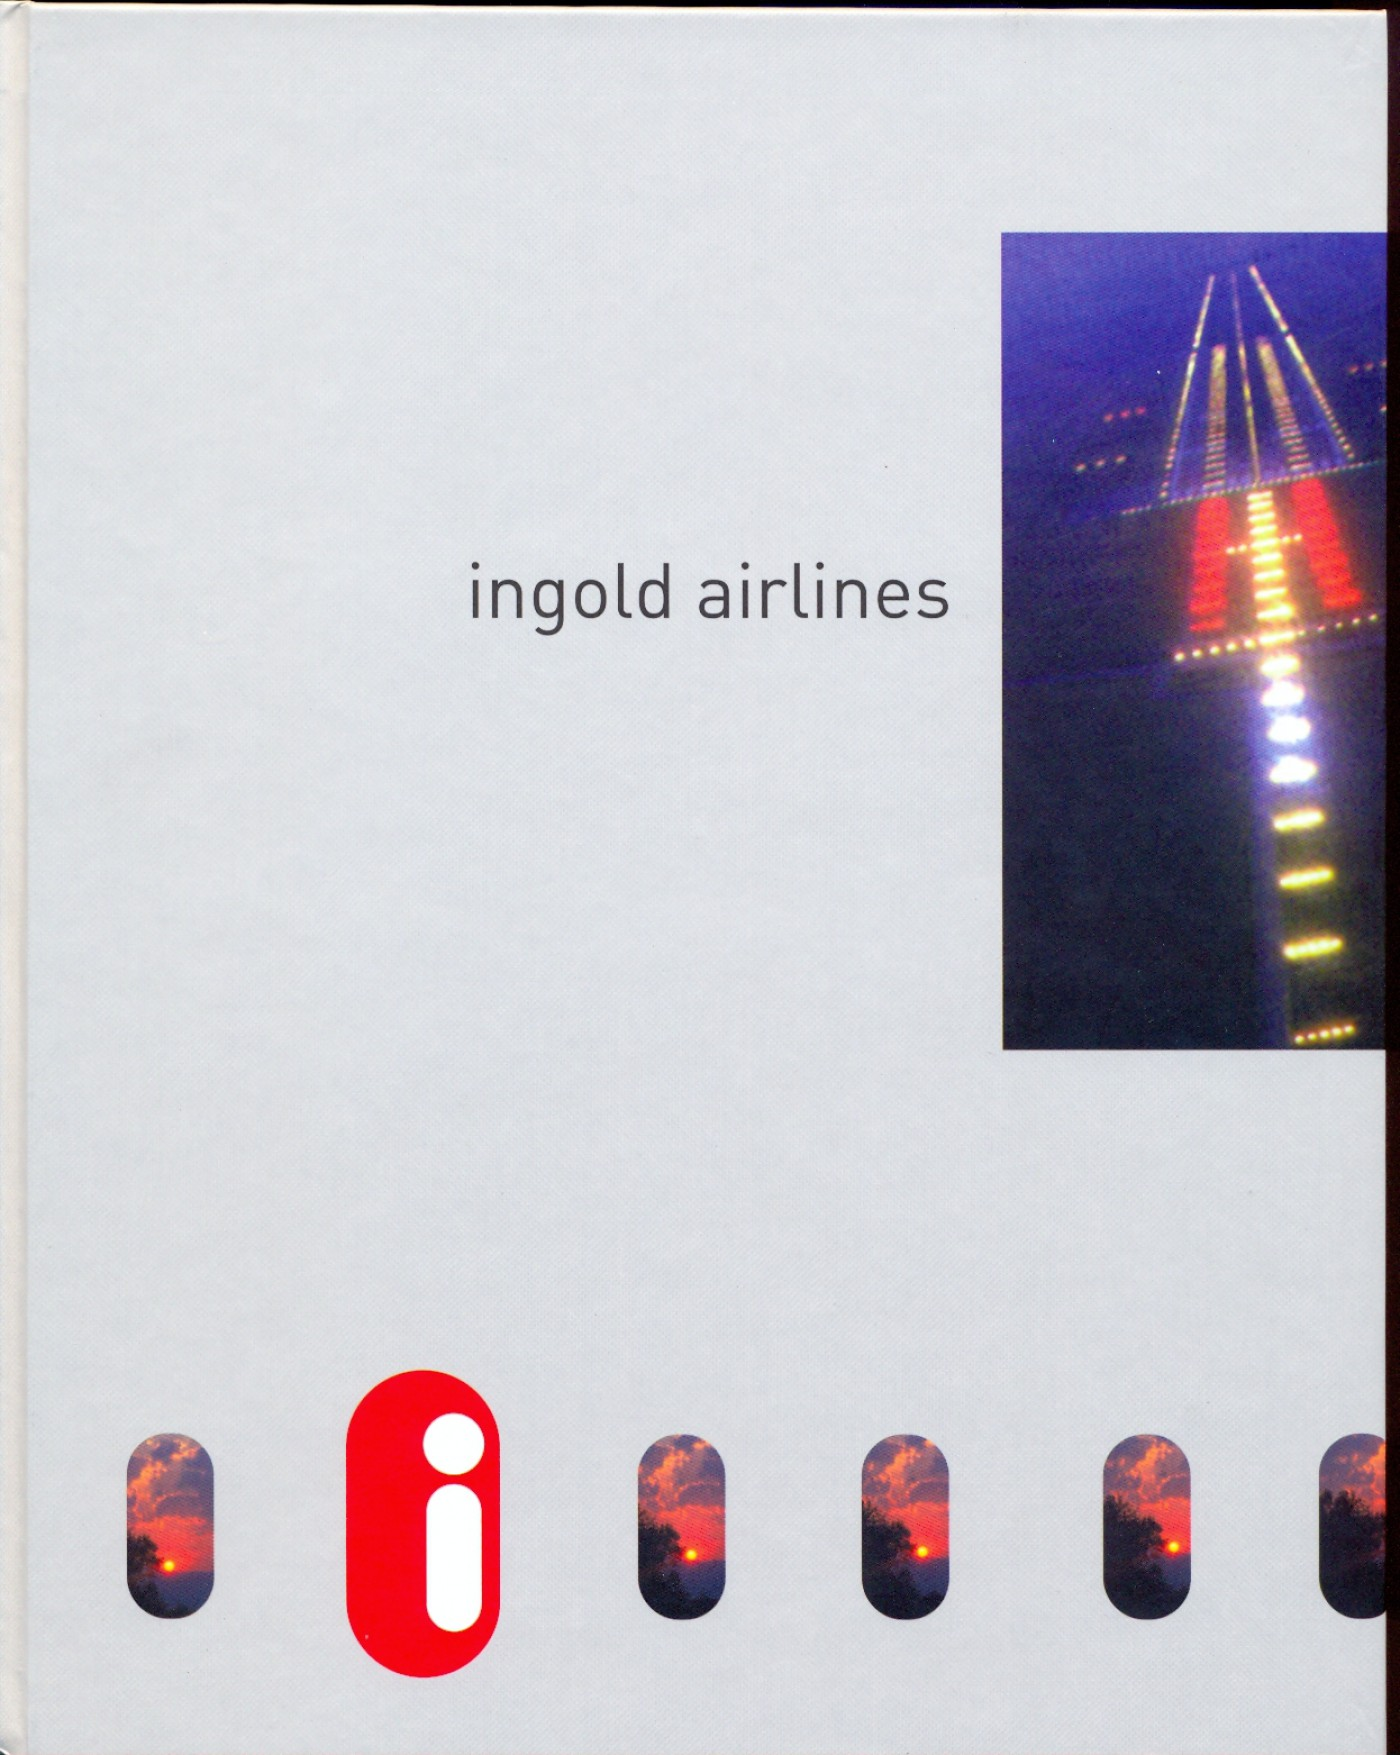 ingold airlines - more than miles